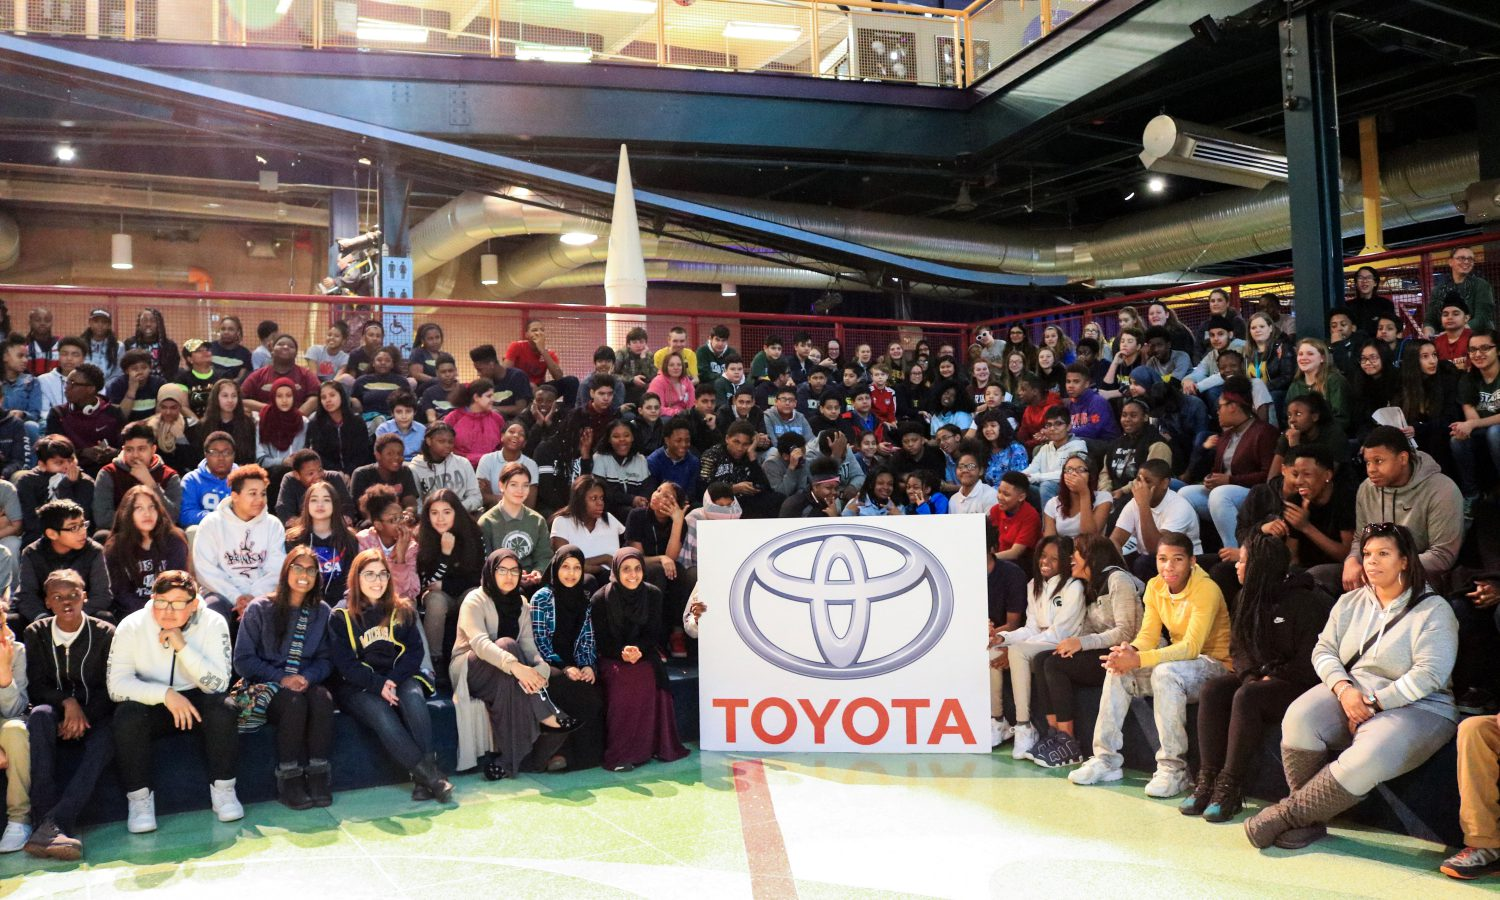 Toyota to Provide All Detroit Public School Eighth Graders Free M-Step Prep Field Trips to Michigan Science Center